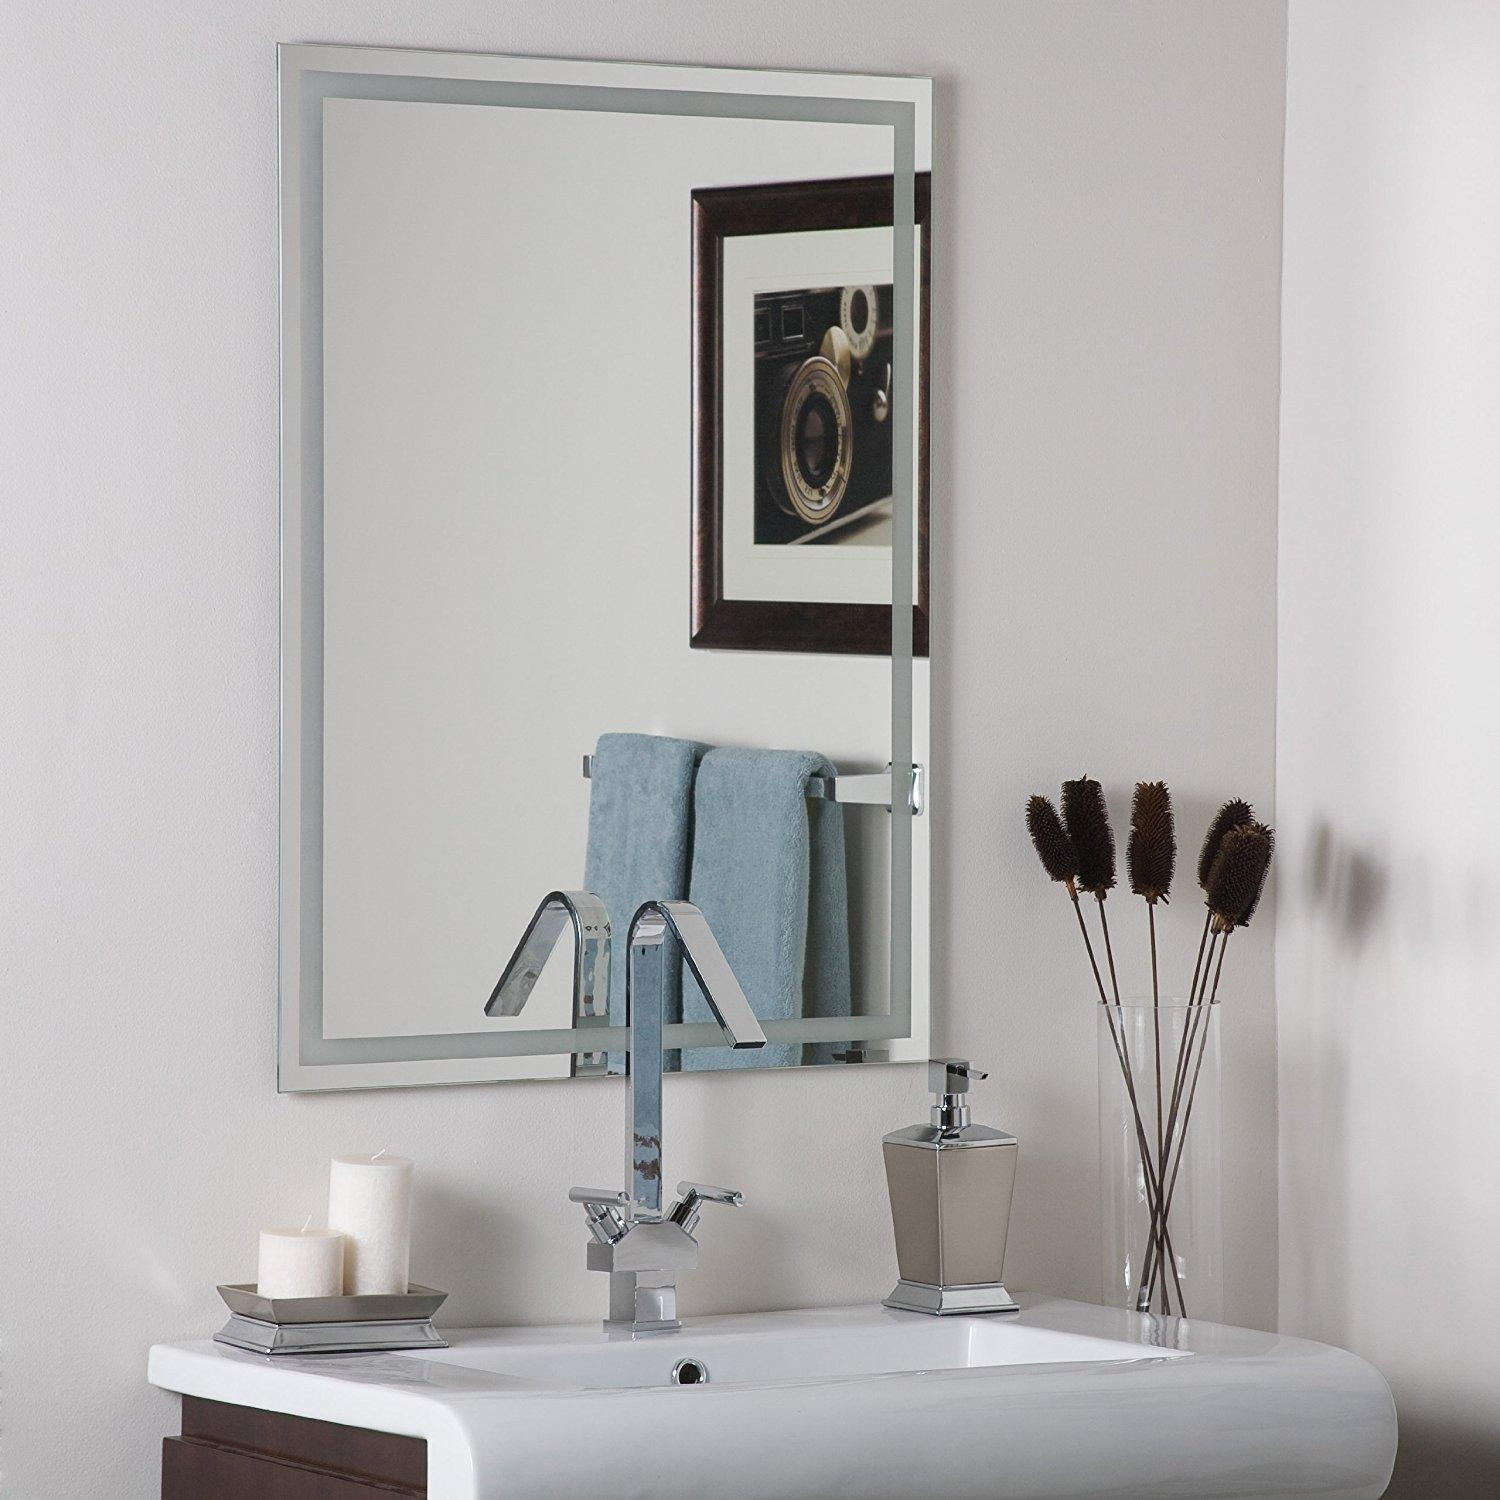 Frame Your Bathroom Mirror: 20 Ideas Of No Frame Wall Mirrors